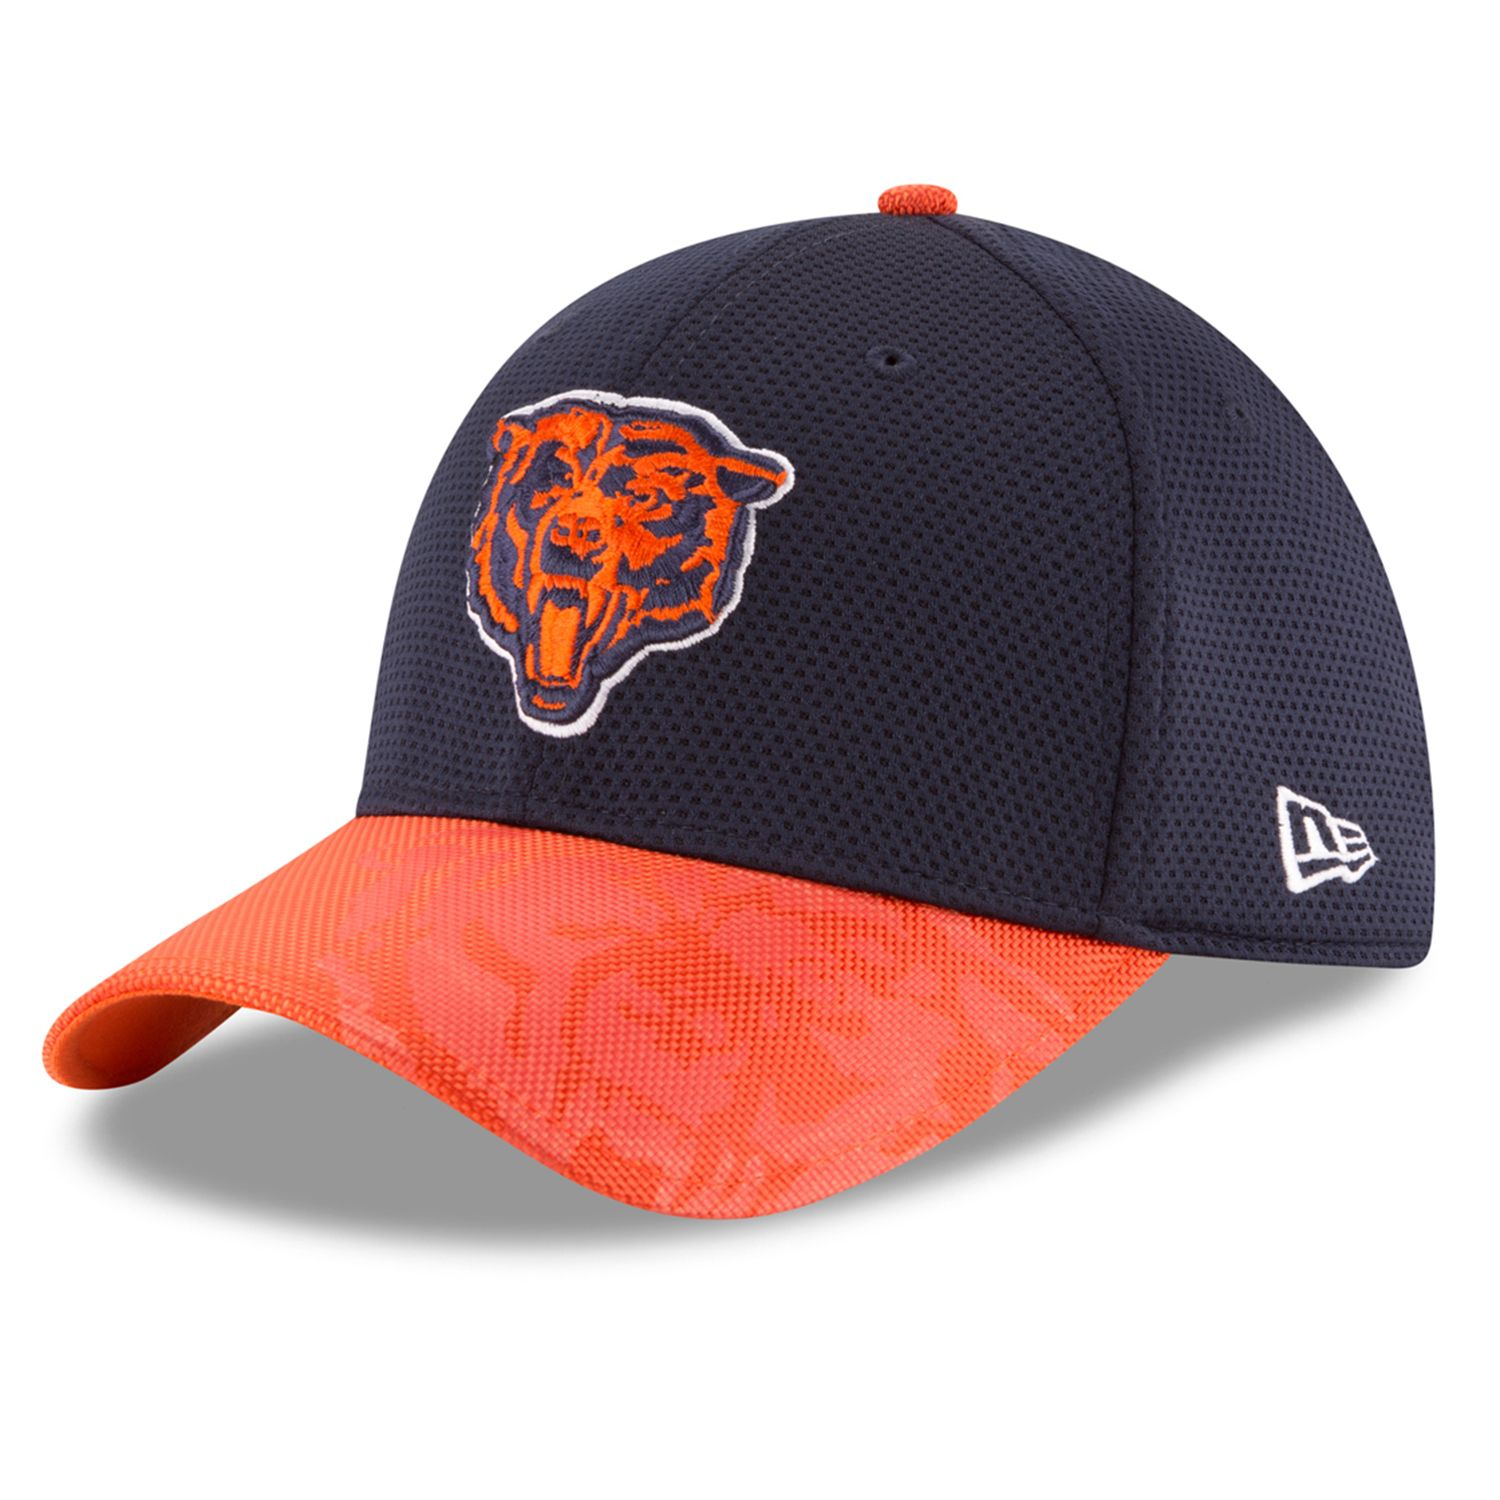 27fa527733e594 NFL Chicago Bears Sports Fan Hats - Accessories | Kohl's